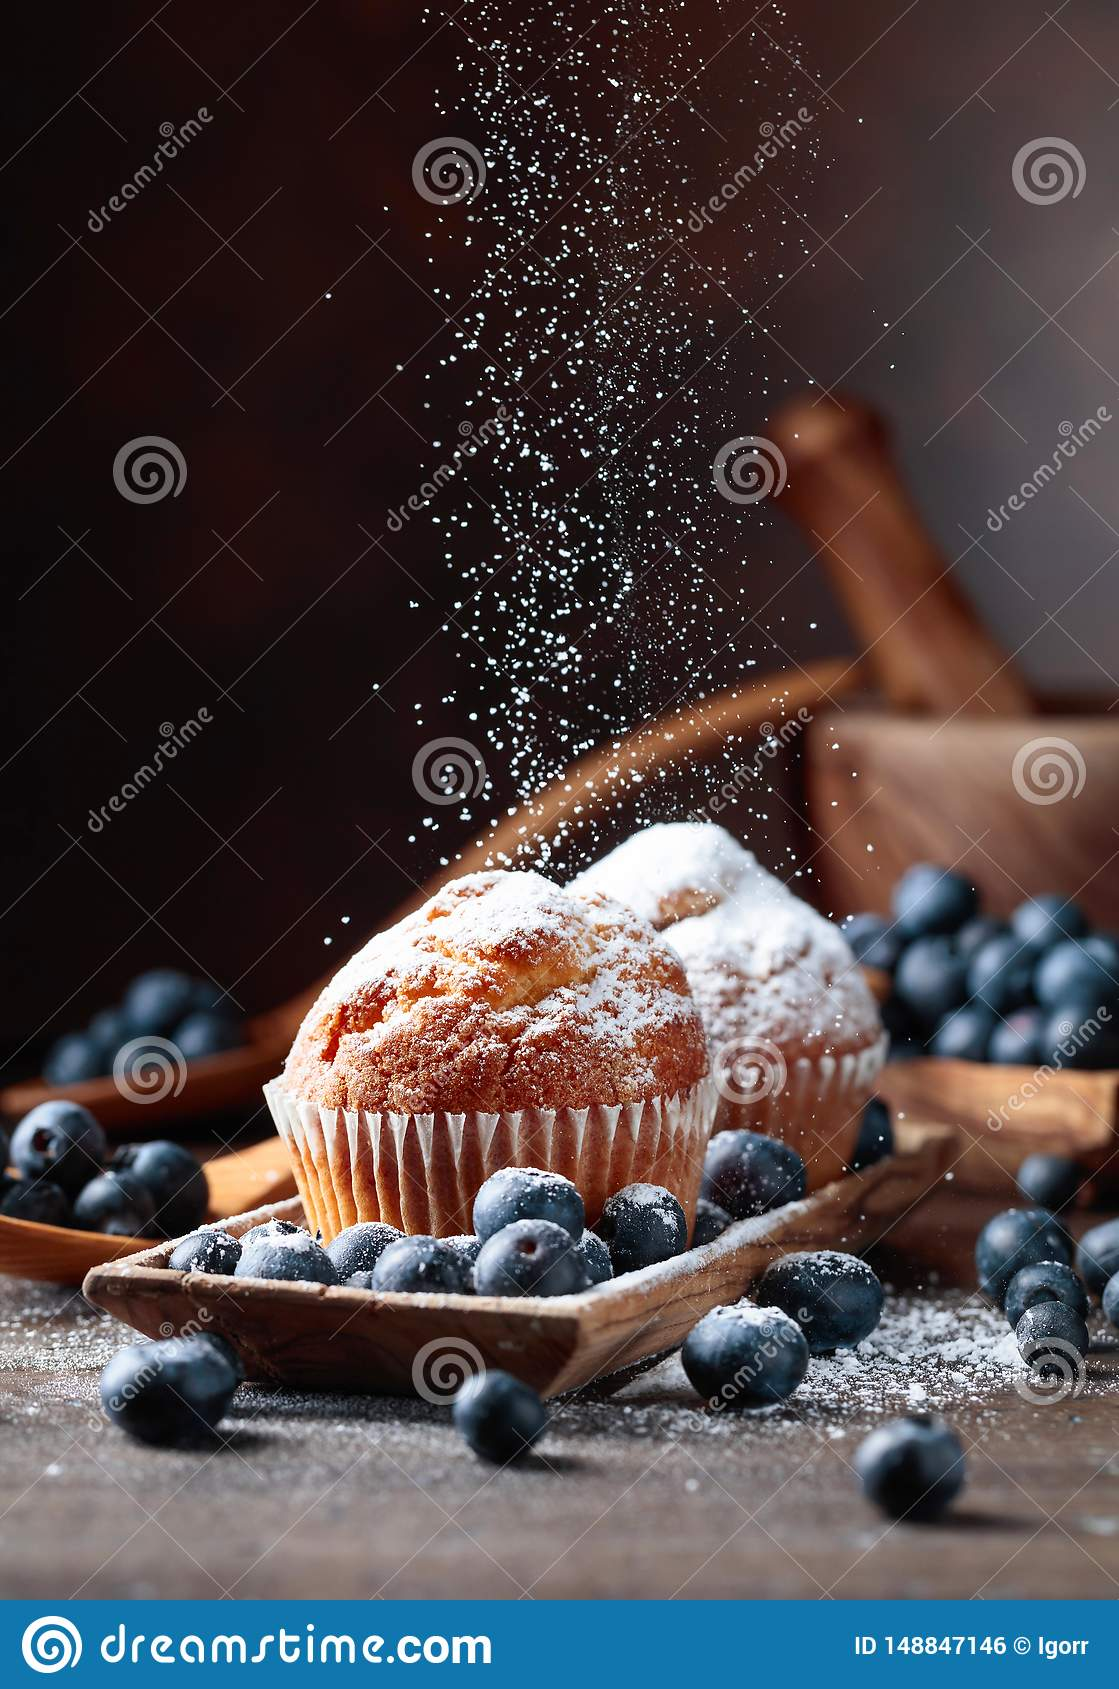 Muffins and blueberries sprinkled with powdered sugar